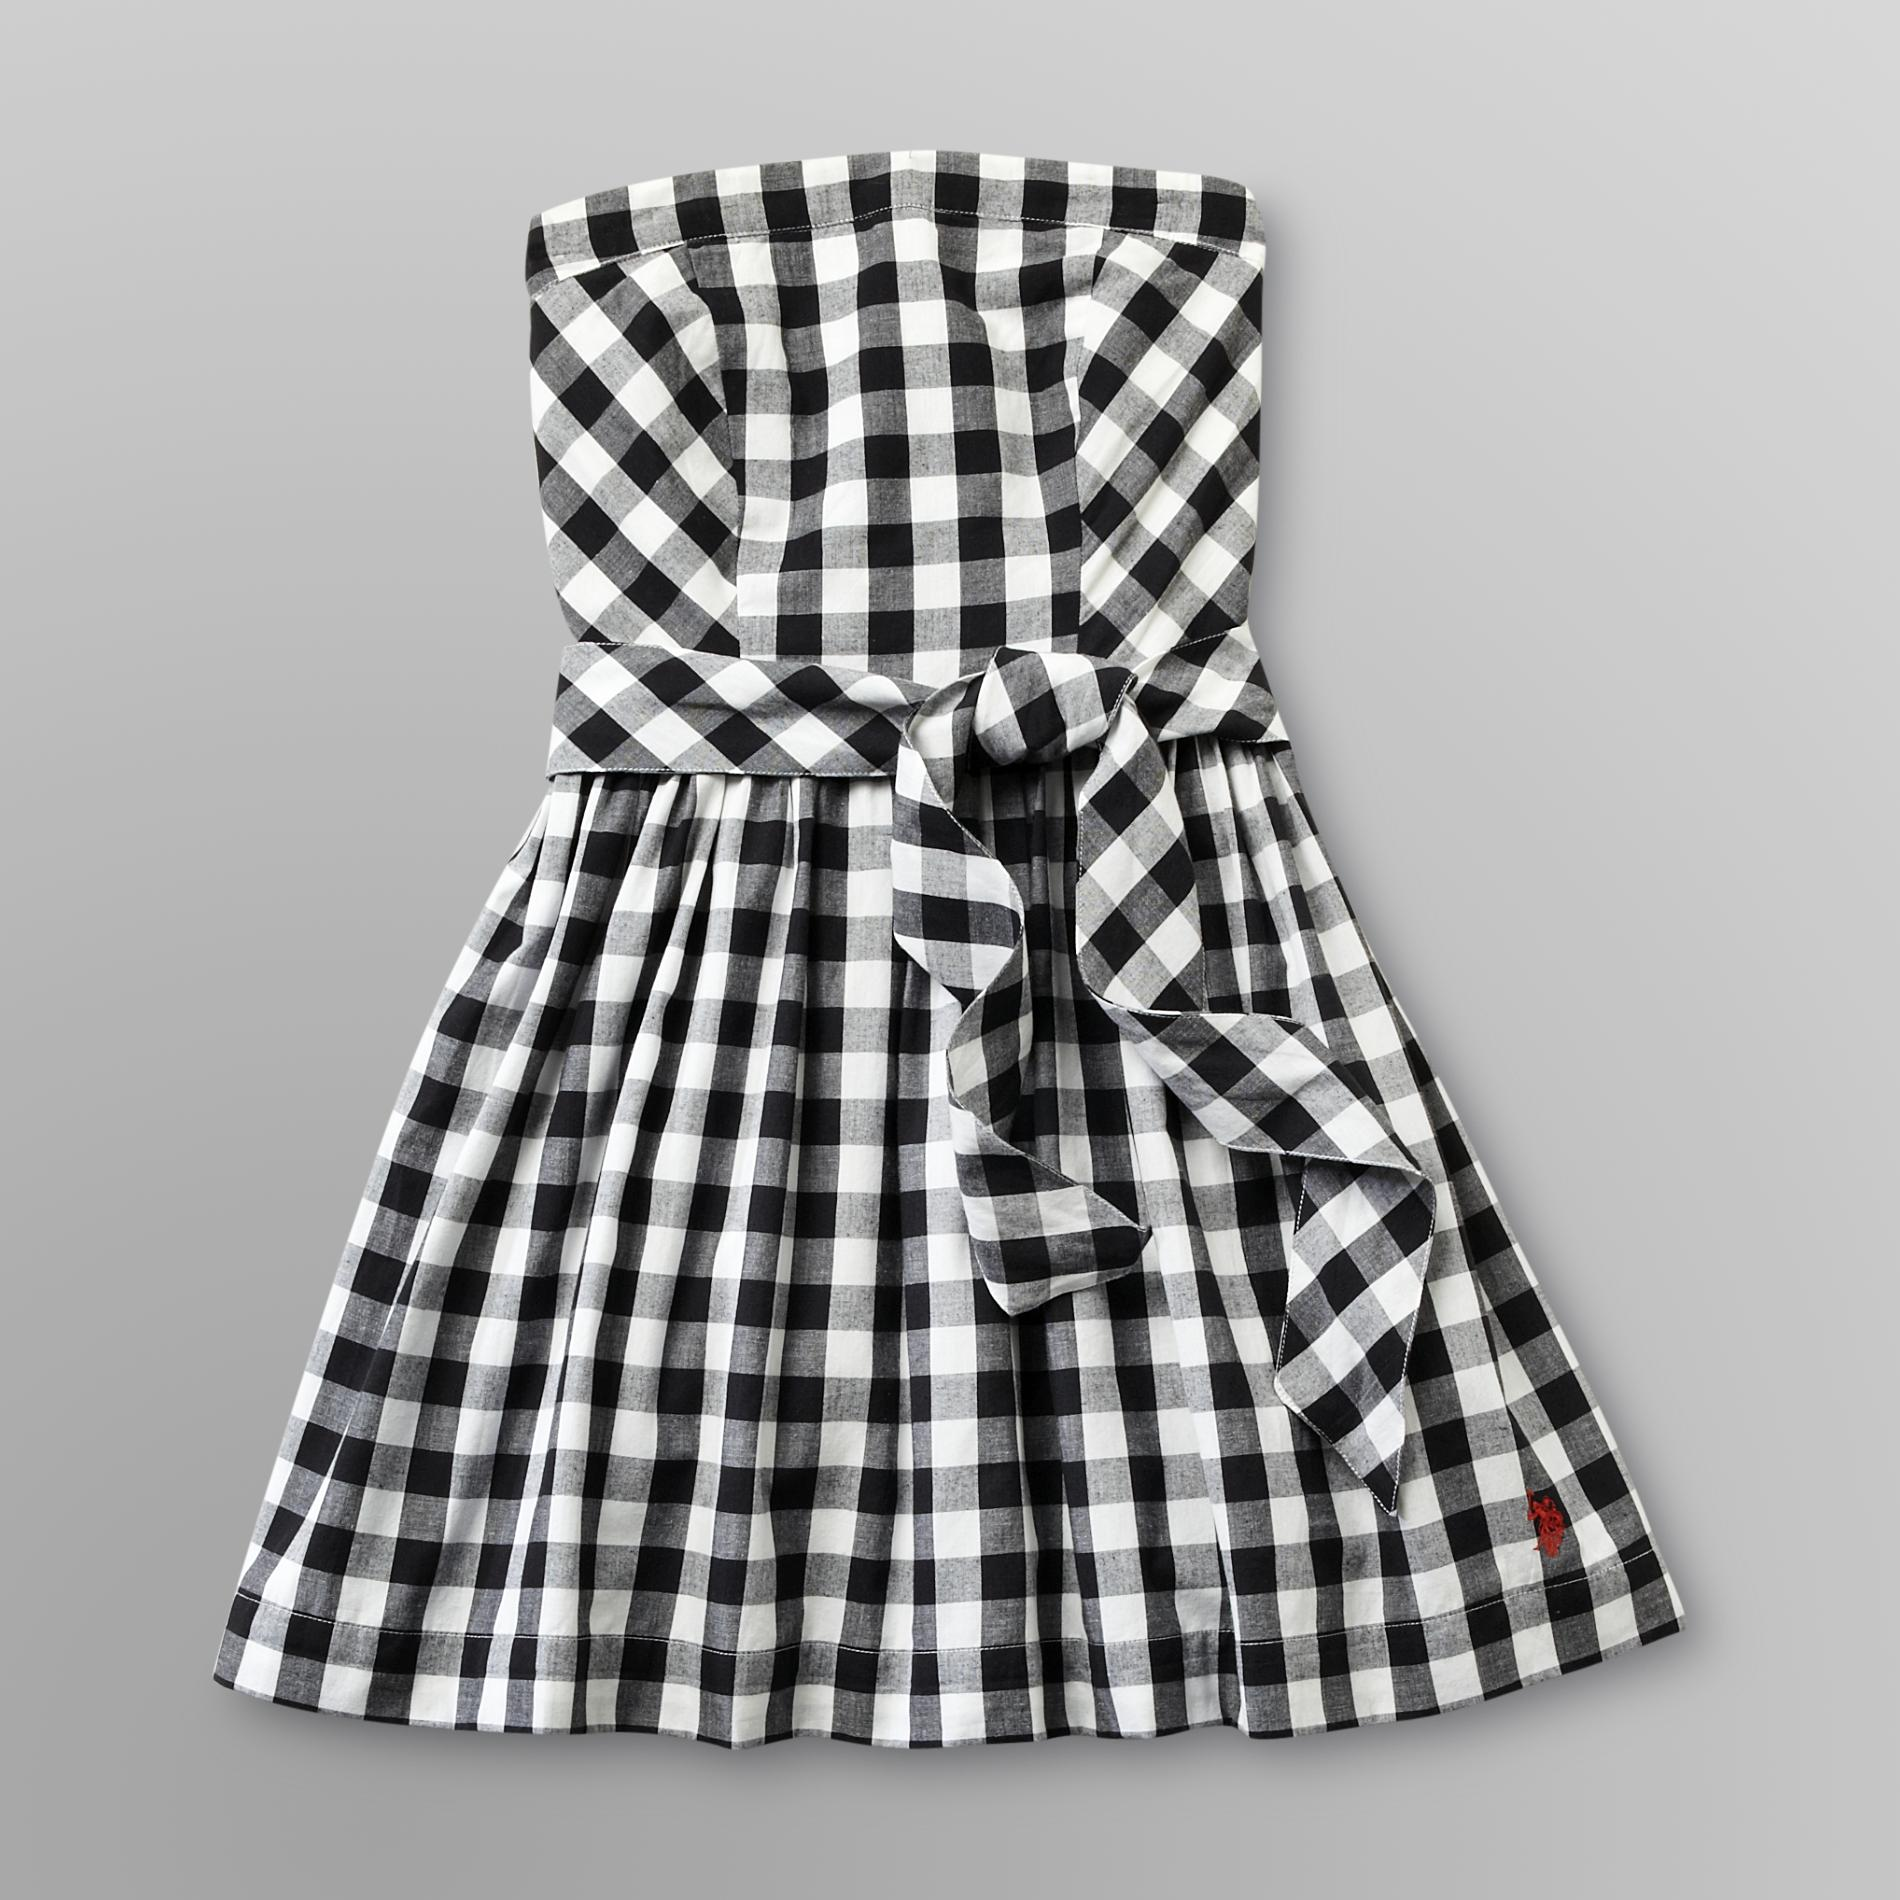 US Polo Assn. Junior's Sleeveless Sundress - Gingham at Sears.com